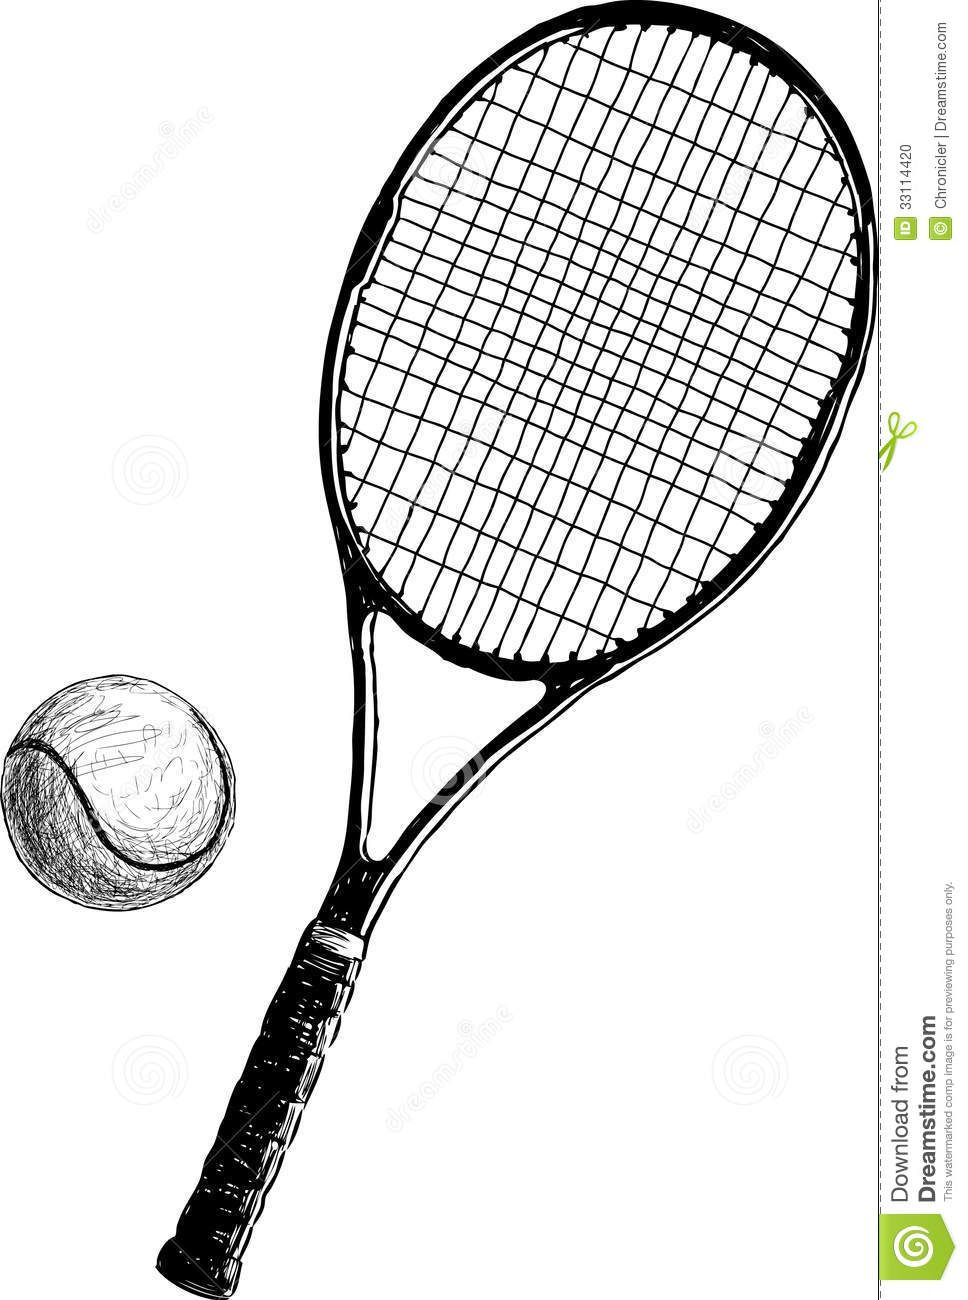 Up Close Tennis Racket Drawings Google Search Tennis Racket Tennis Sport Poster Design